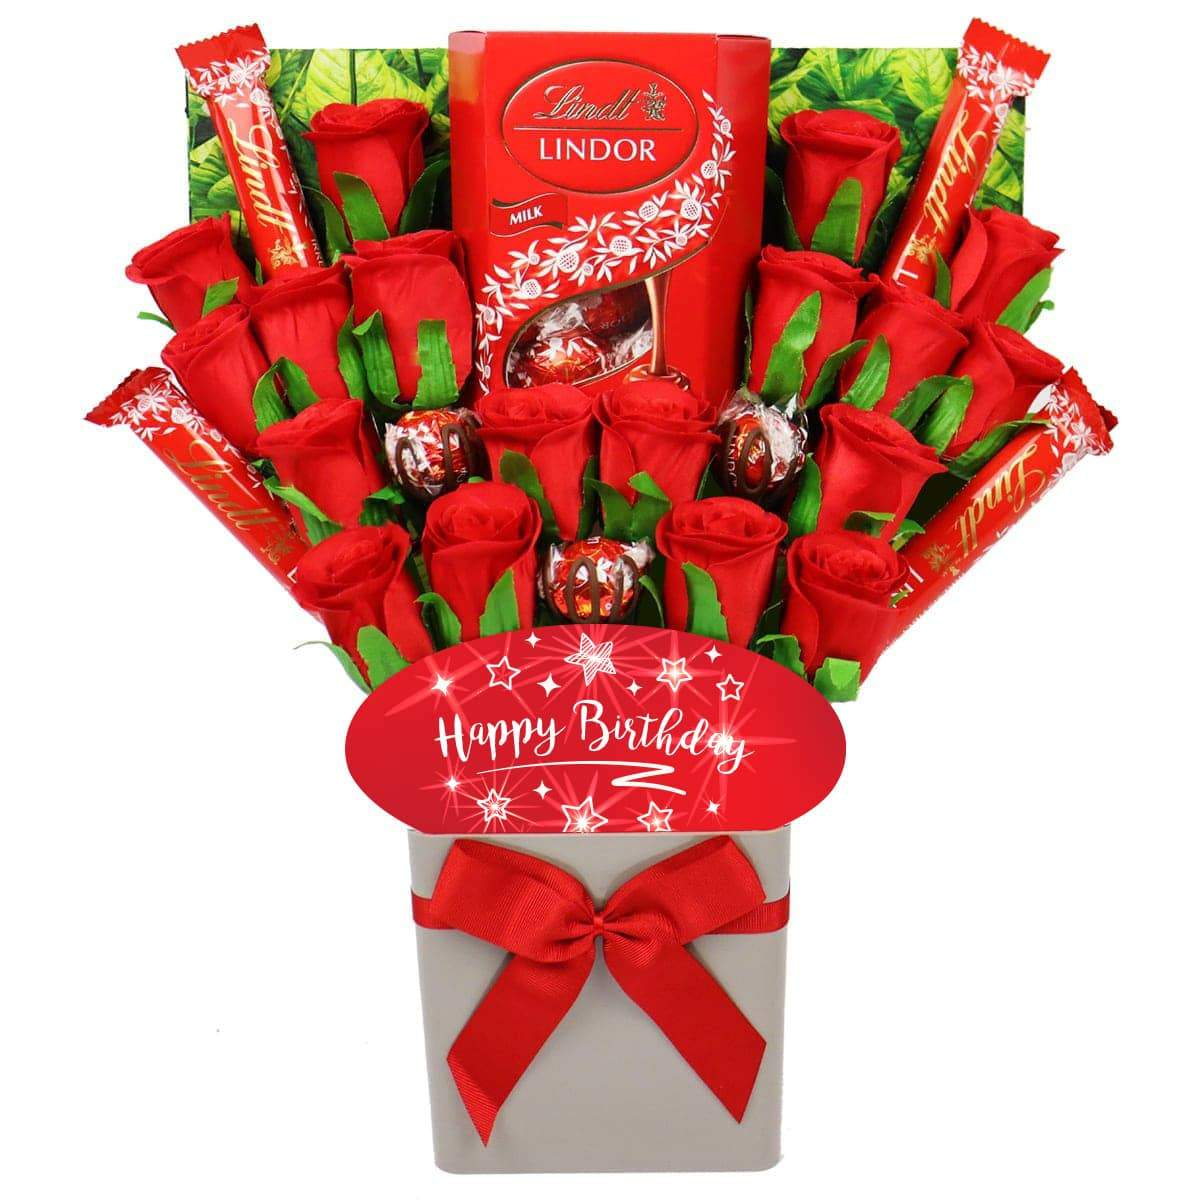 The Happy Birthday Lindt Lindor Chocolate Bouquet